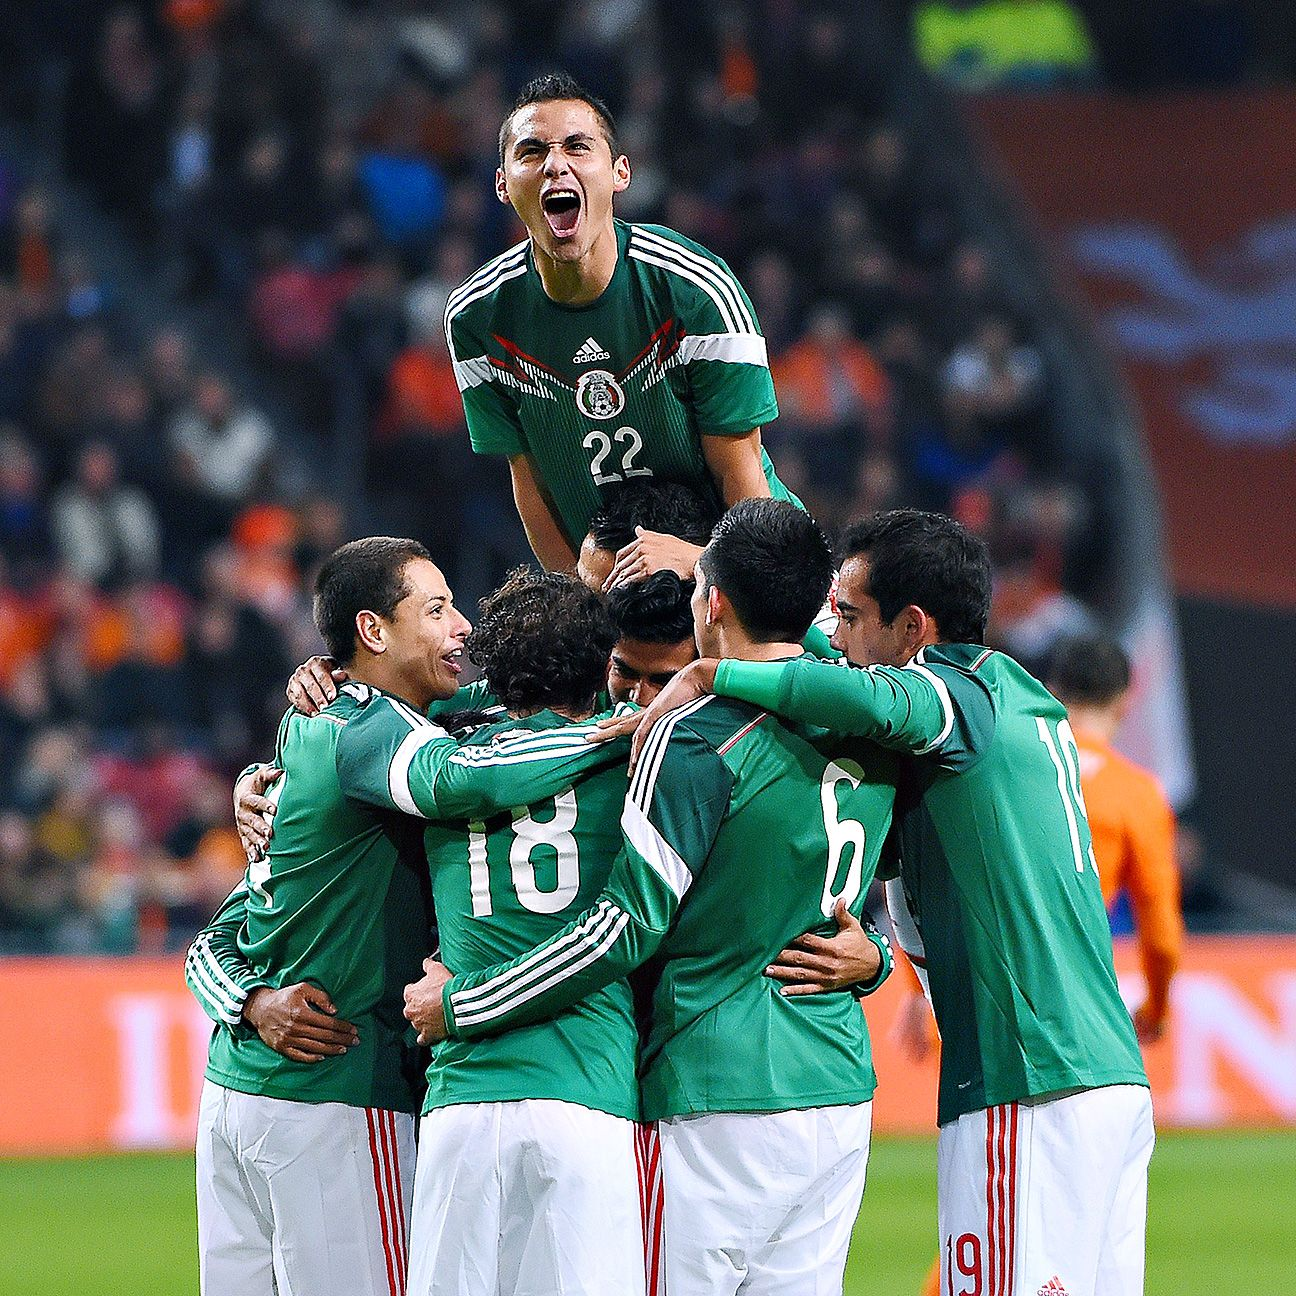 Carlos Vela was swarmed by teammates after scoring his first goal in Mexico's 3-2 triumph versus the Netherlands.